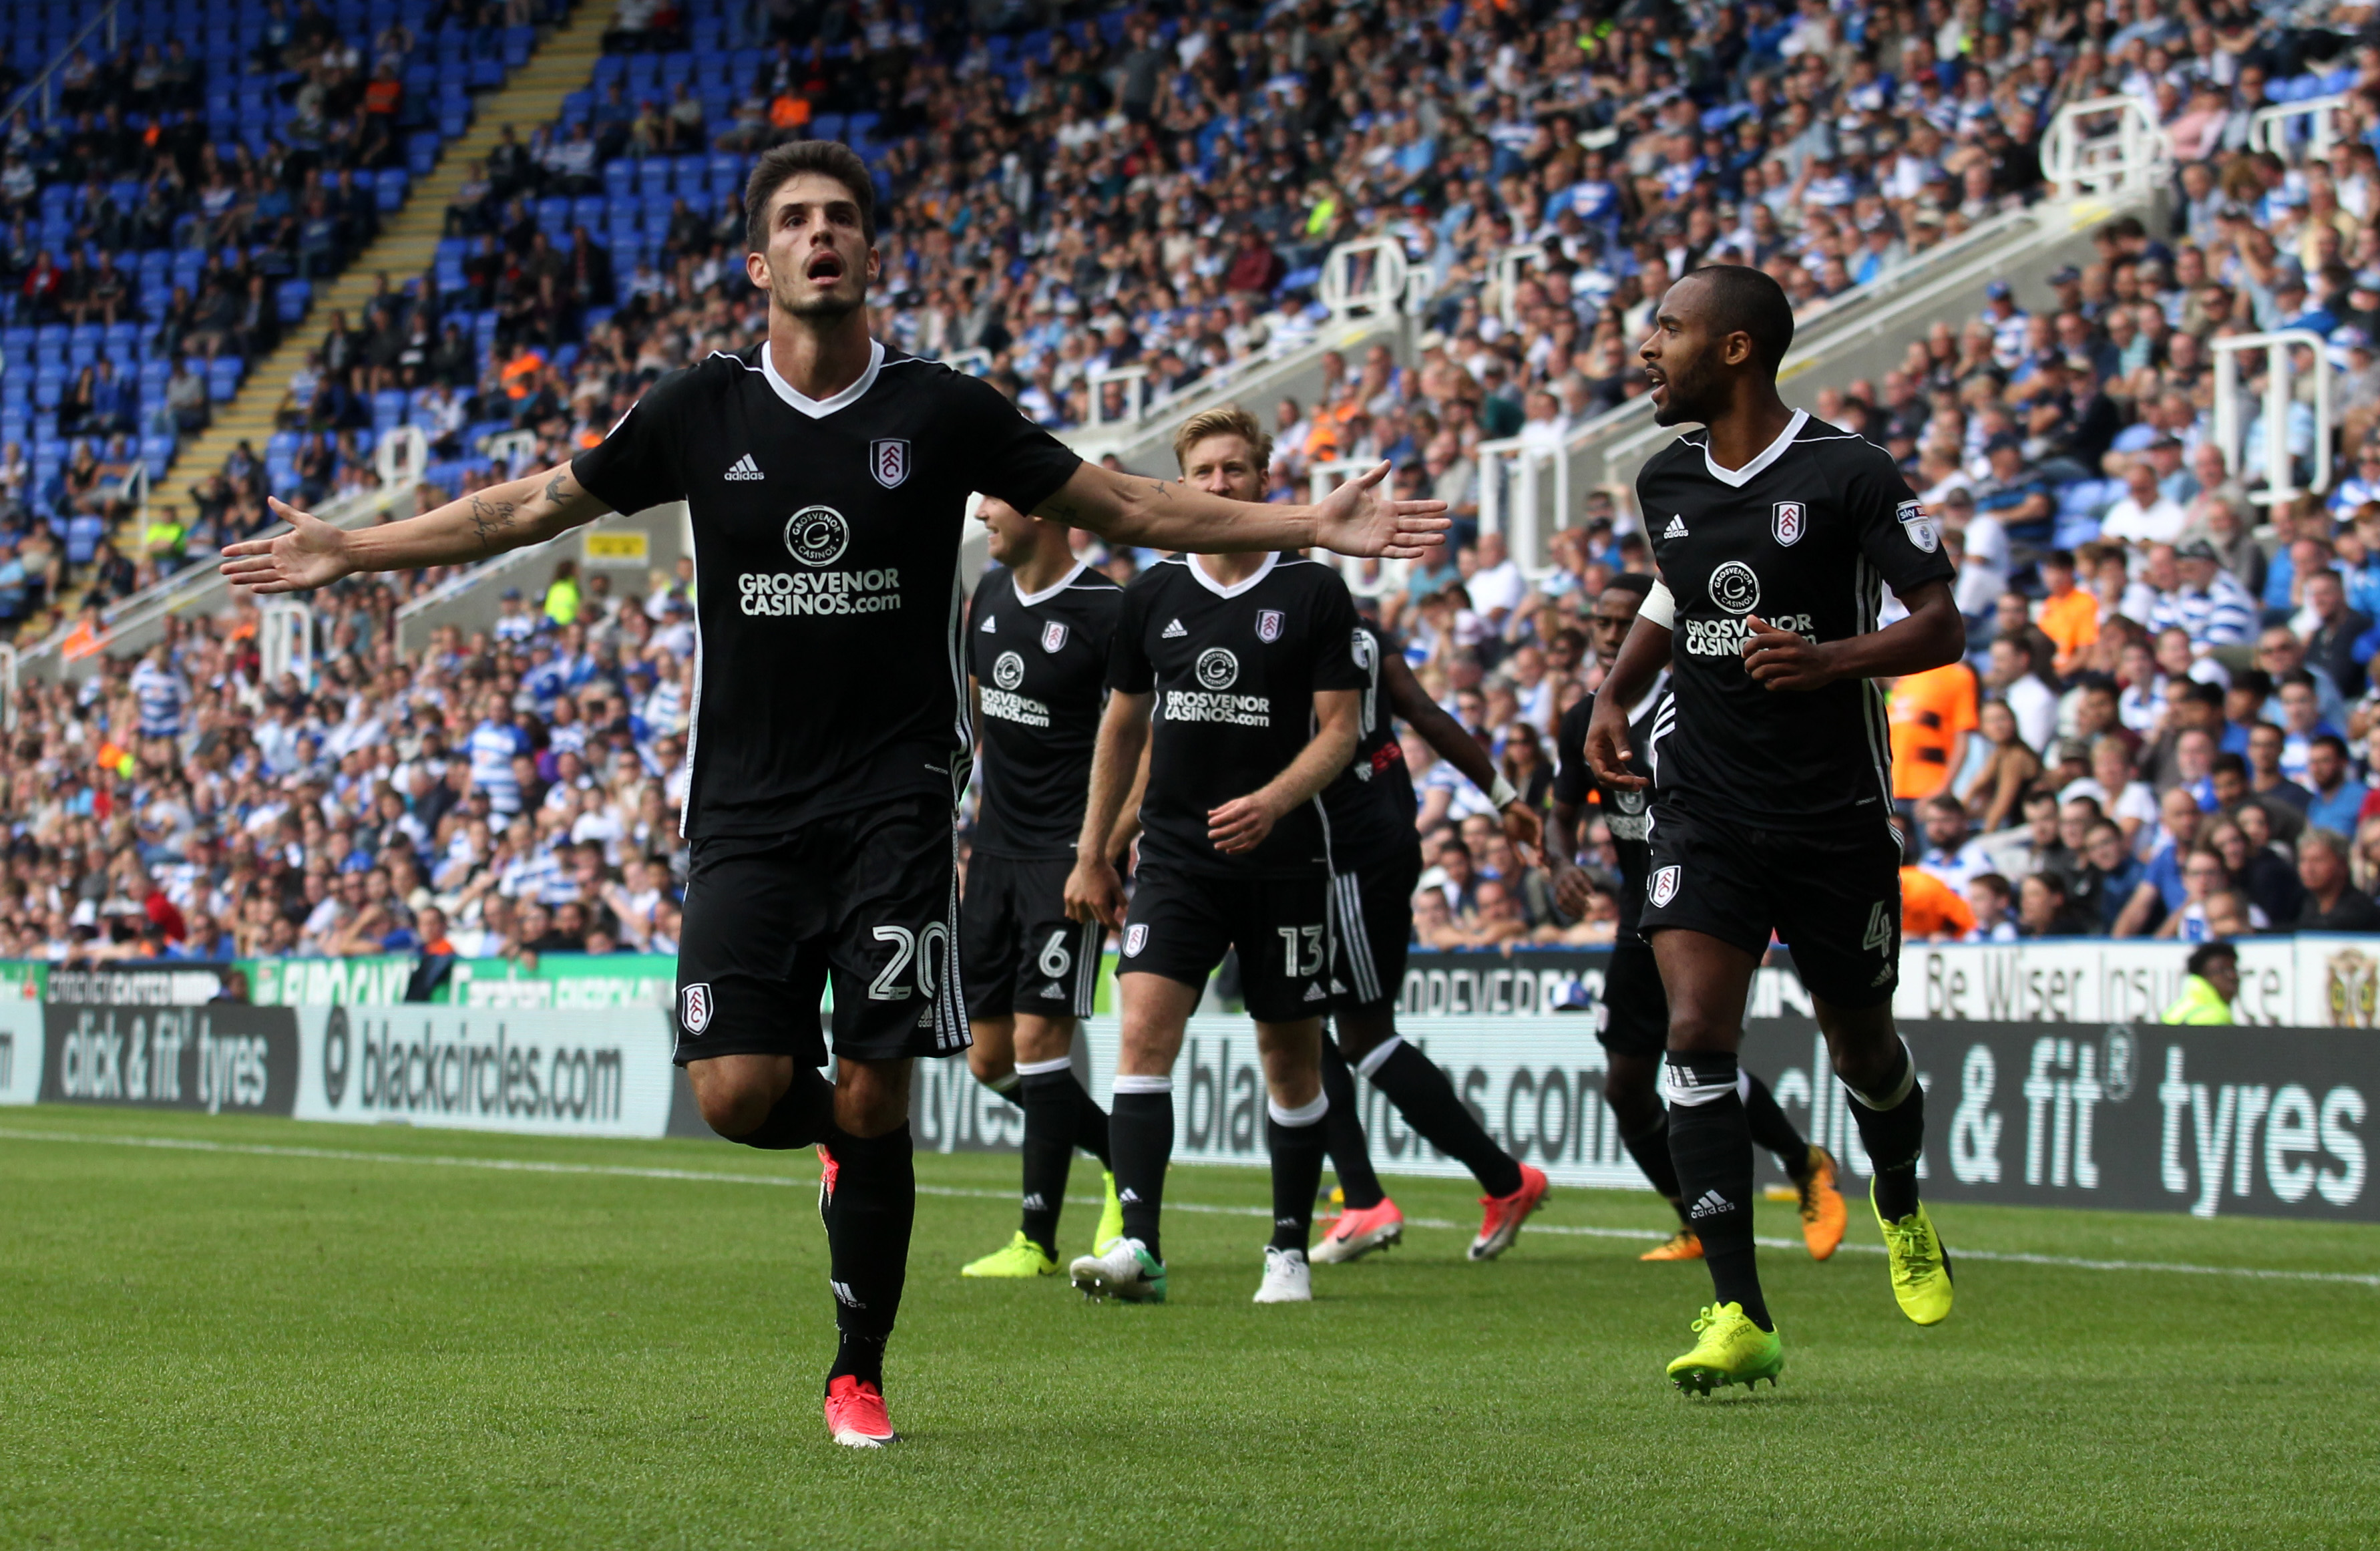 READING, ENGLAND - AUGUST 12: Lucas Piazon of Fulham celebrates scoring during the Sky Bet Championship match between Reading and Fulham at Madejski Stadium on August 12, 2017 in Reading, England. (Photo by Harry Hubbard/Getty Images)